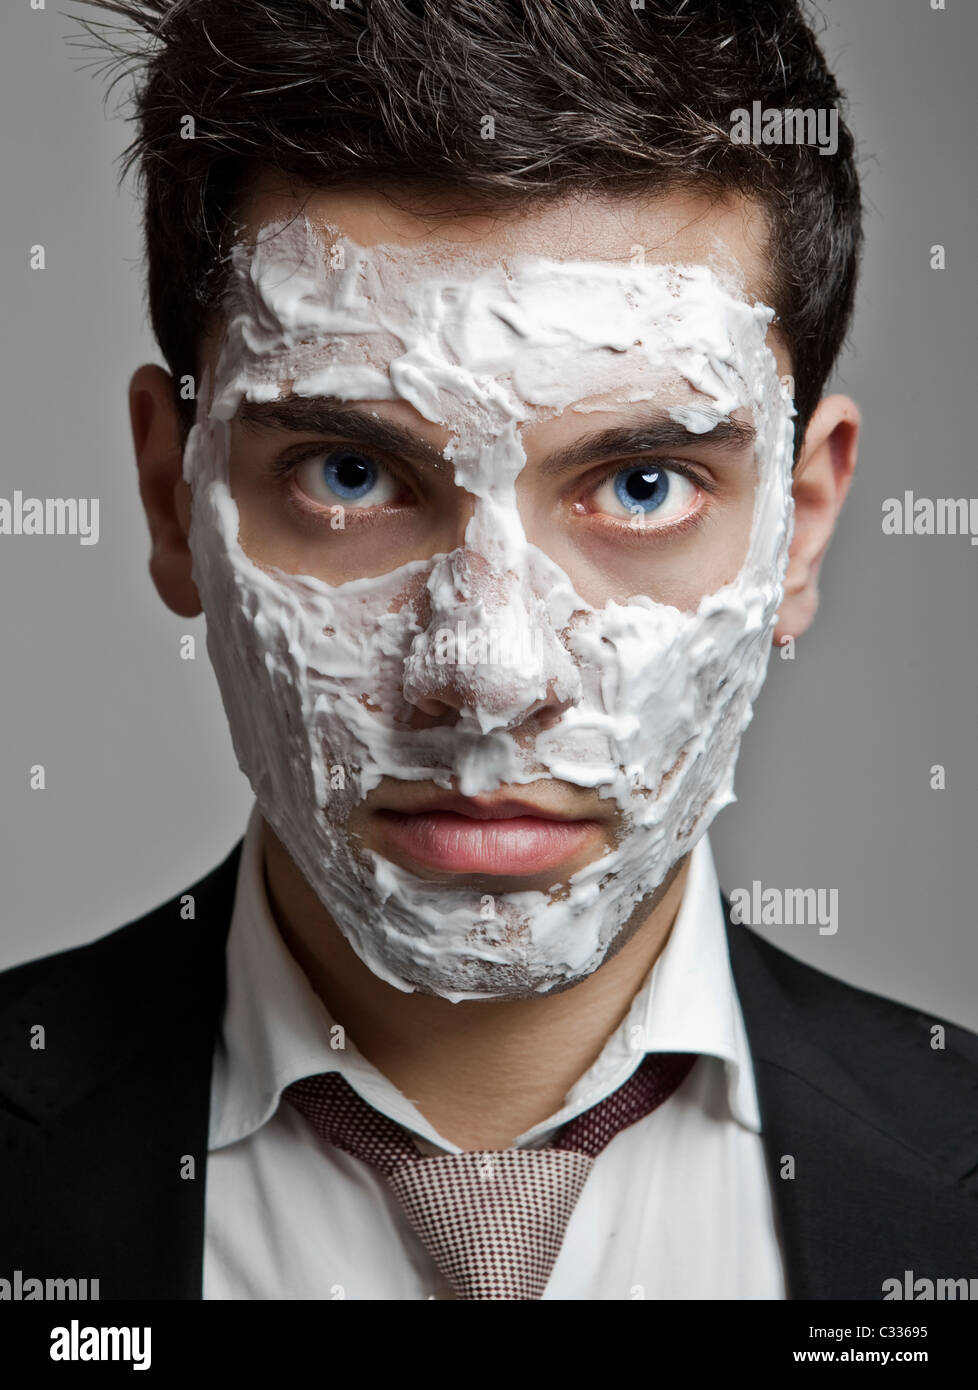 Portrait of a young businessman with a face full of shaved foam - Stock Image